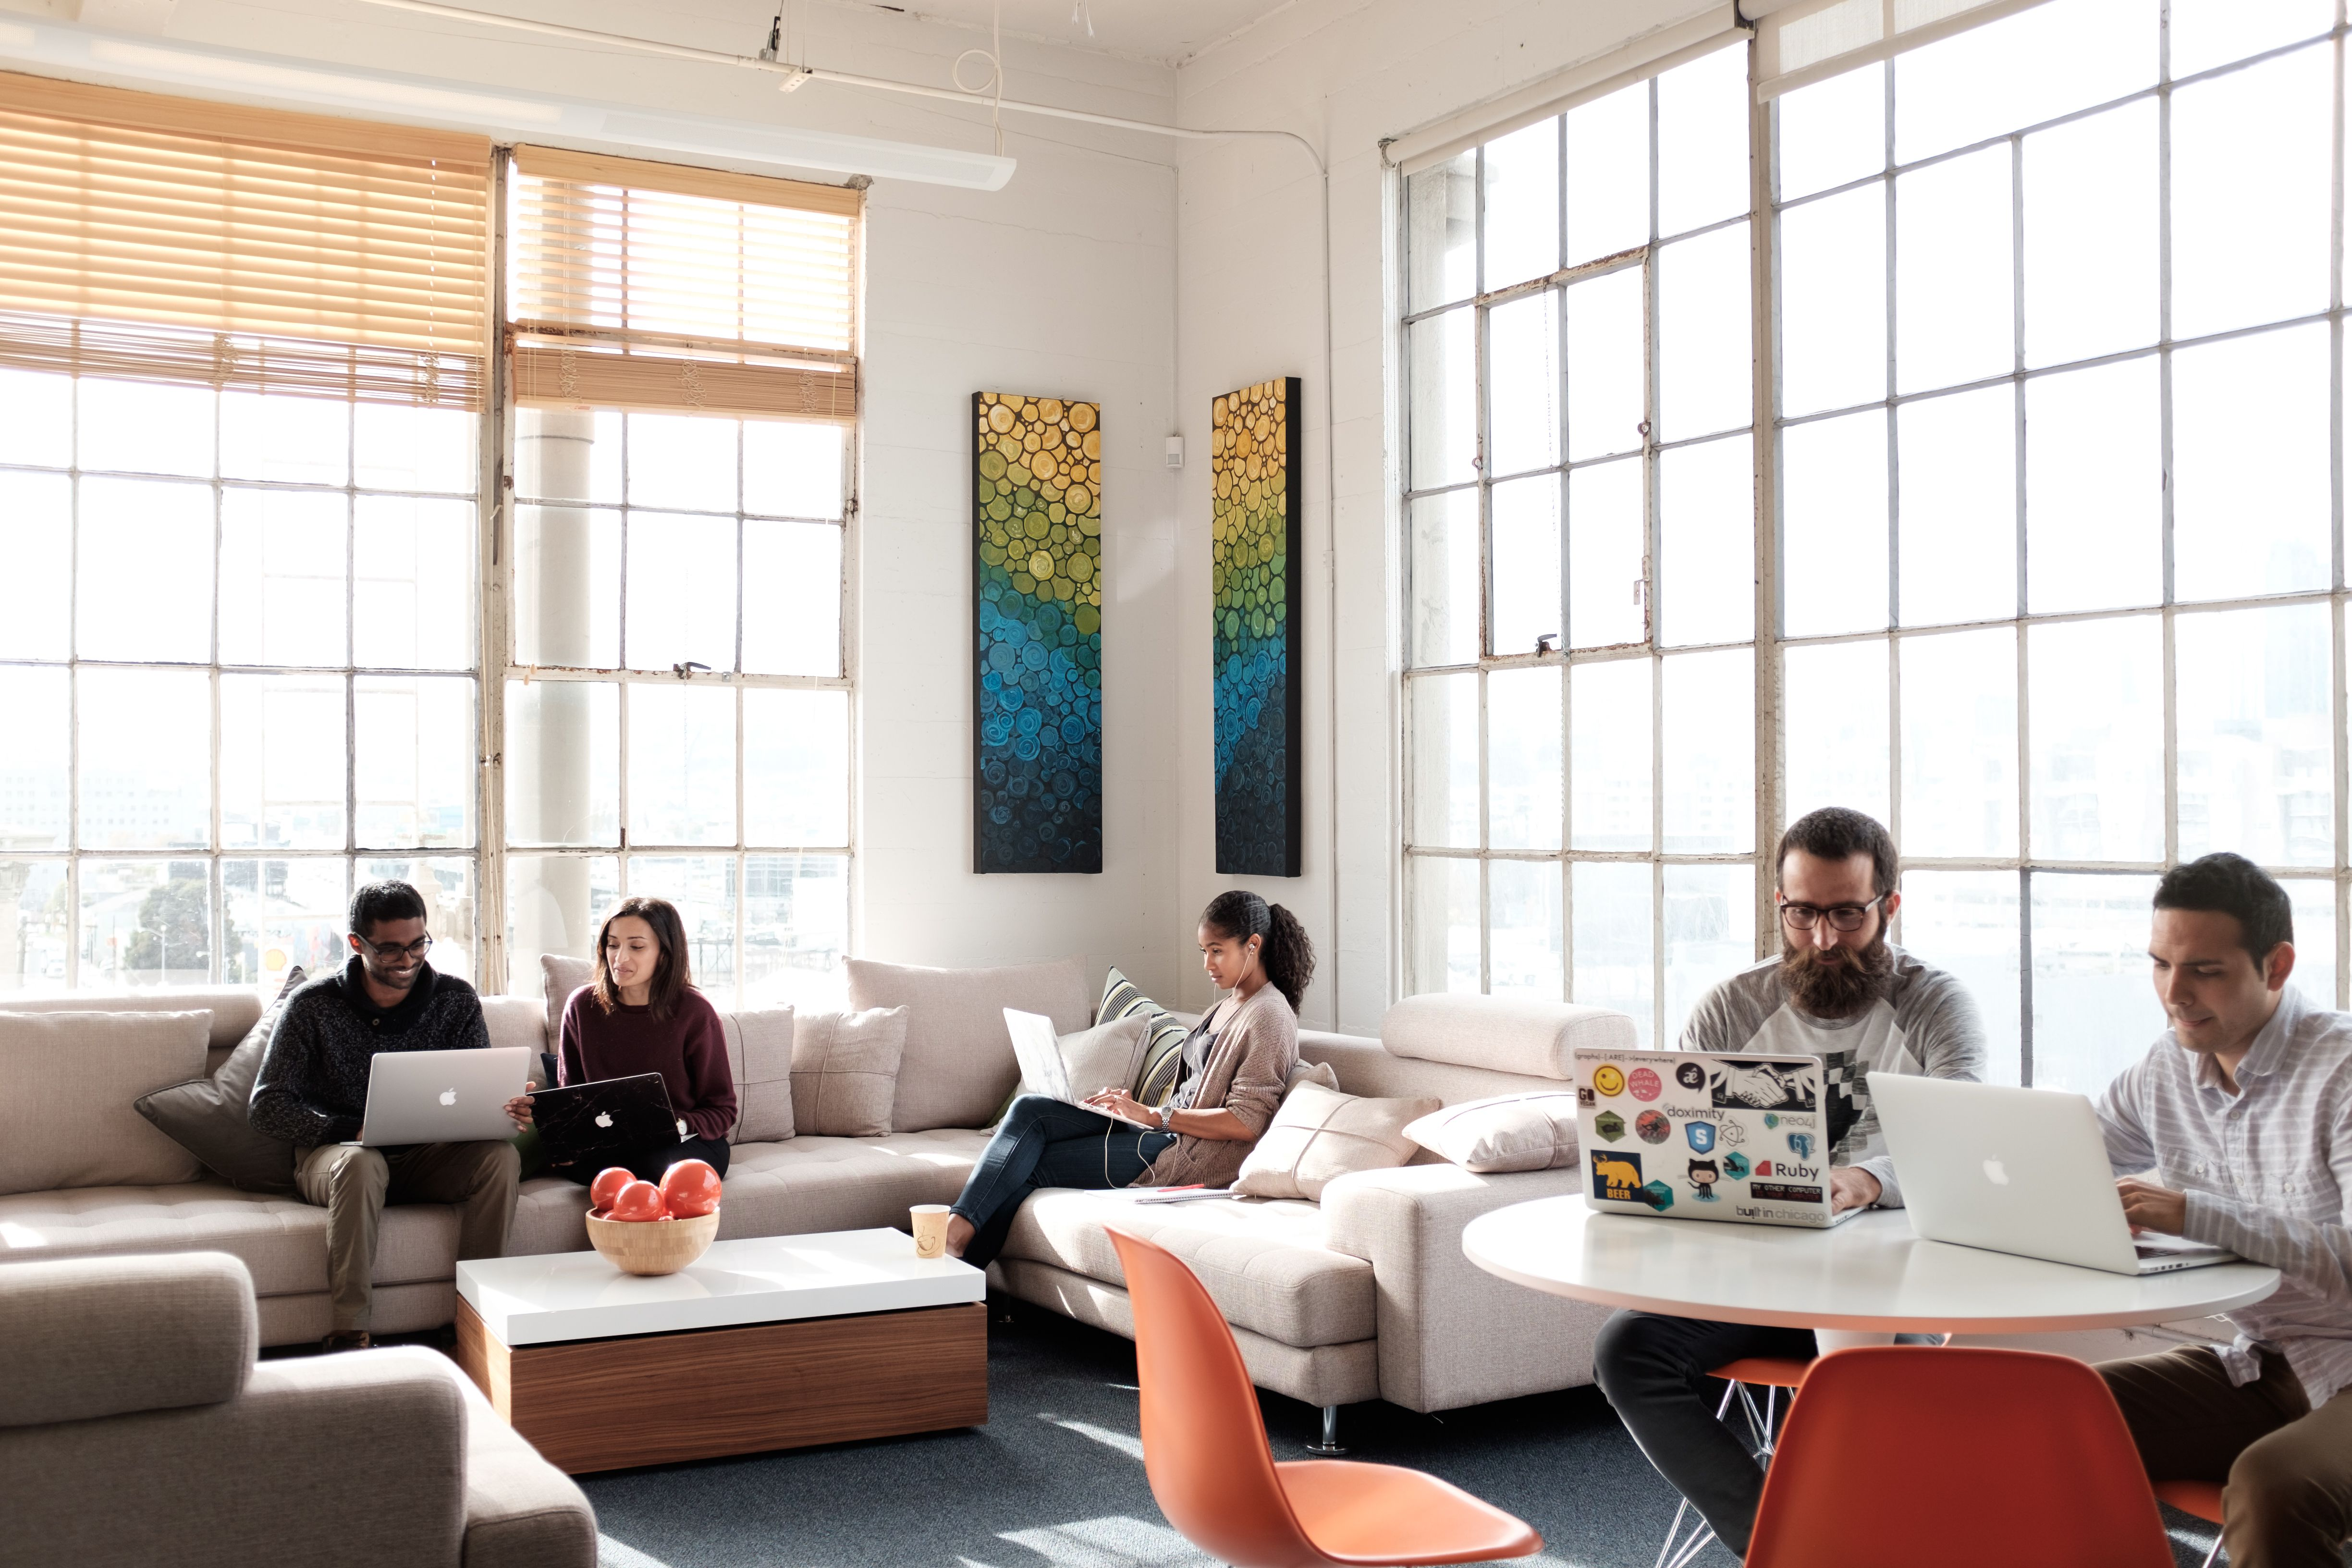 The Doximity office in San Francisco